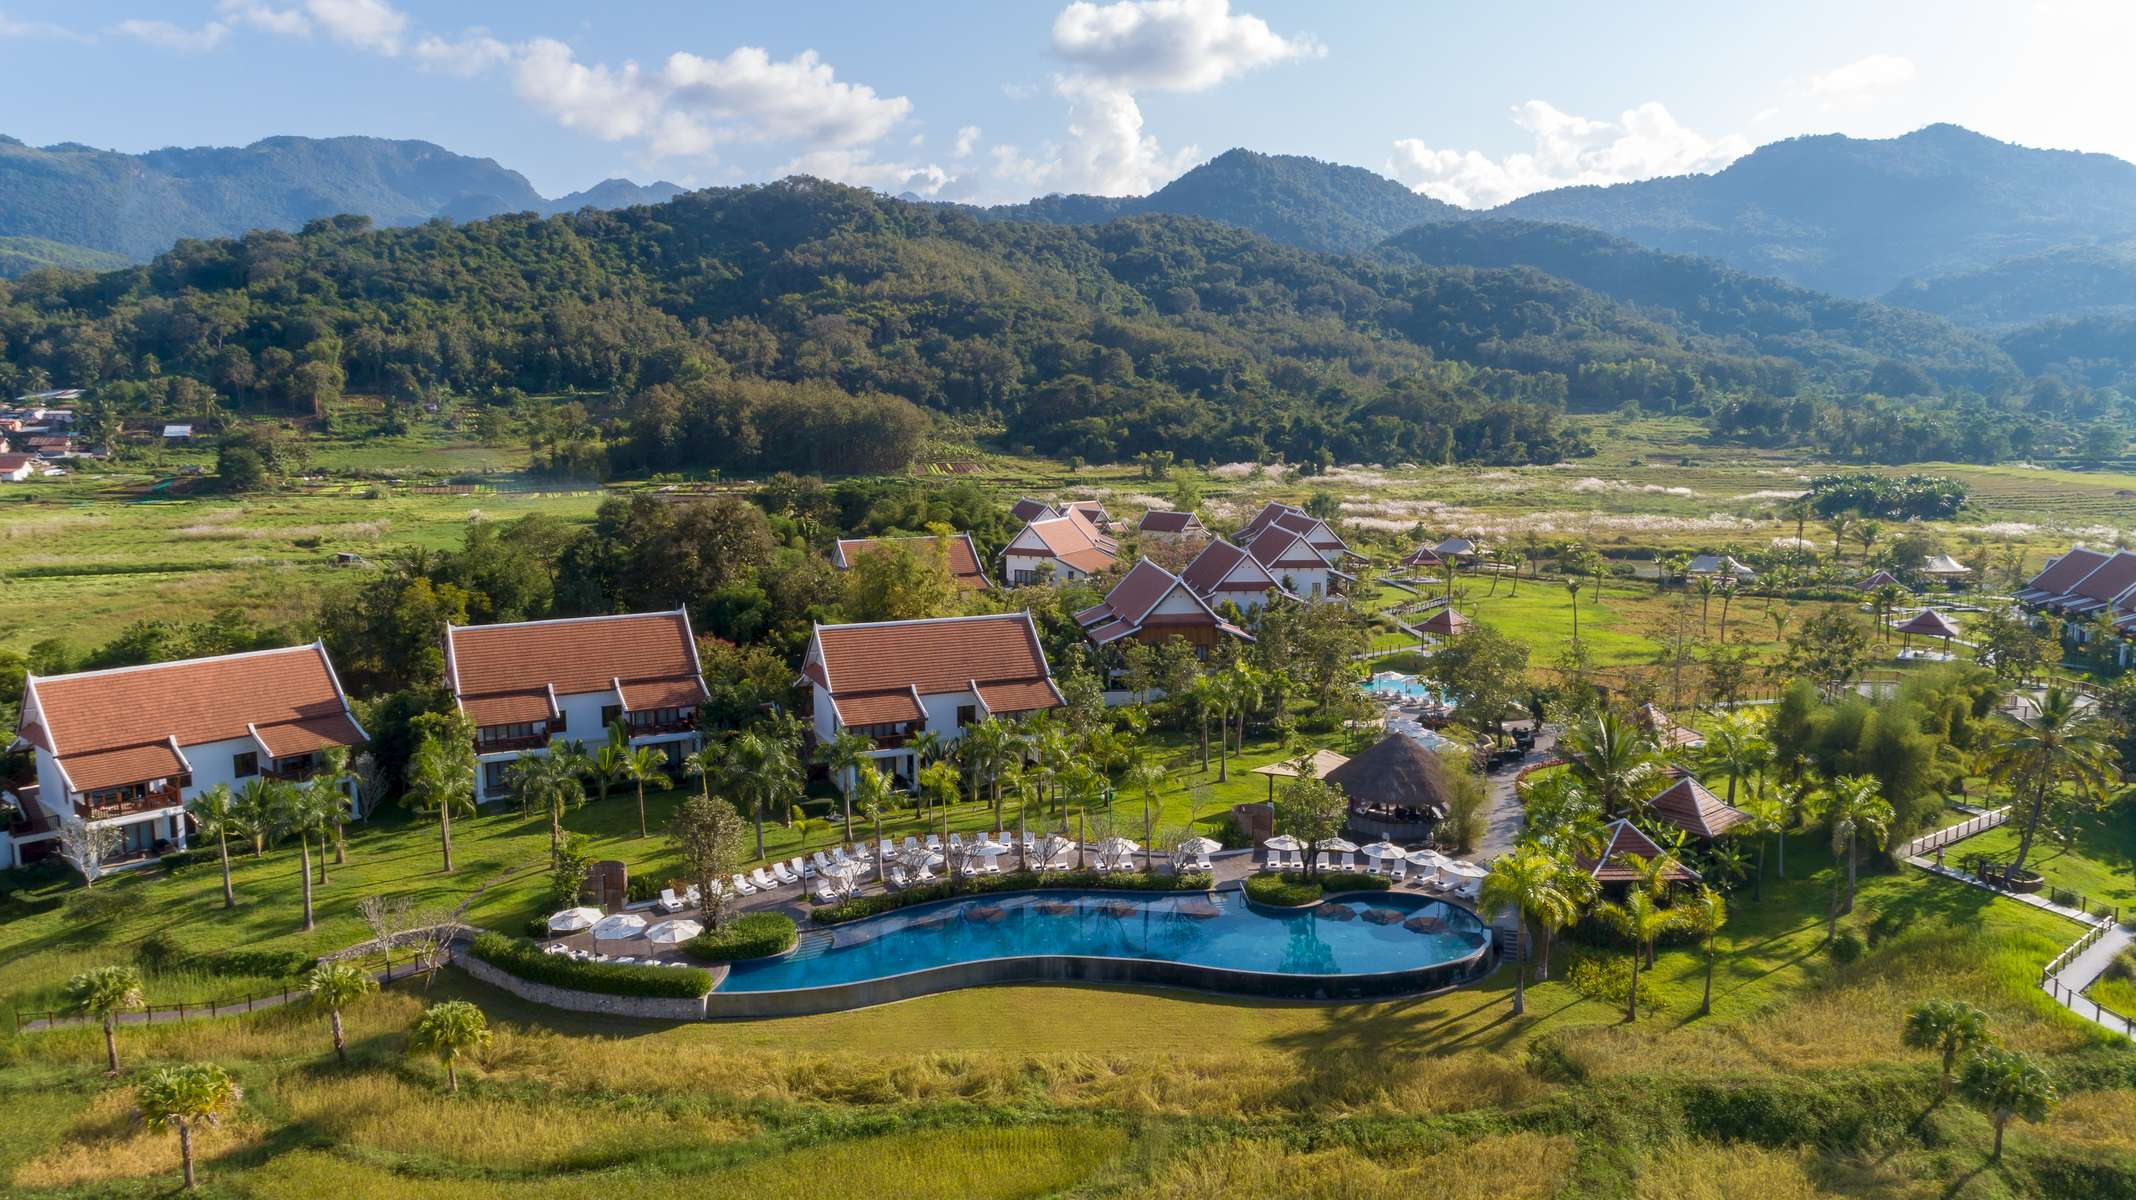 Pullman-Luang-Prabang-Laos-9112-lifestyle-Photo-by-Cyril-Eberle-DJI_0756